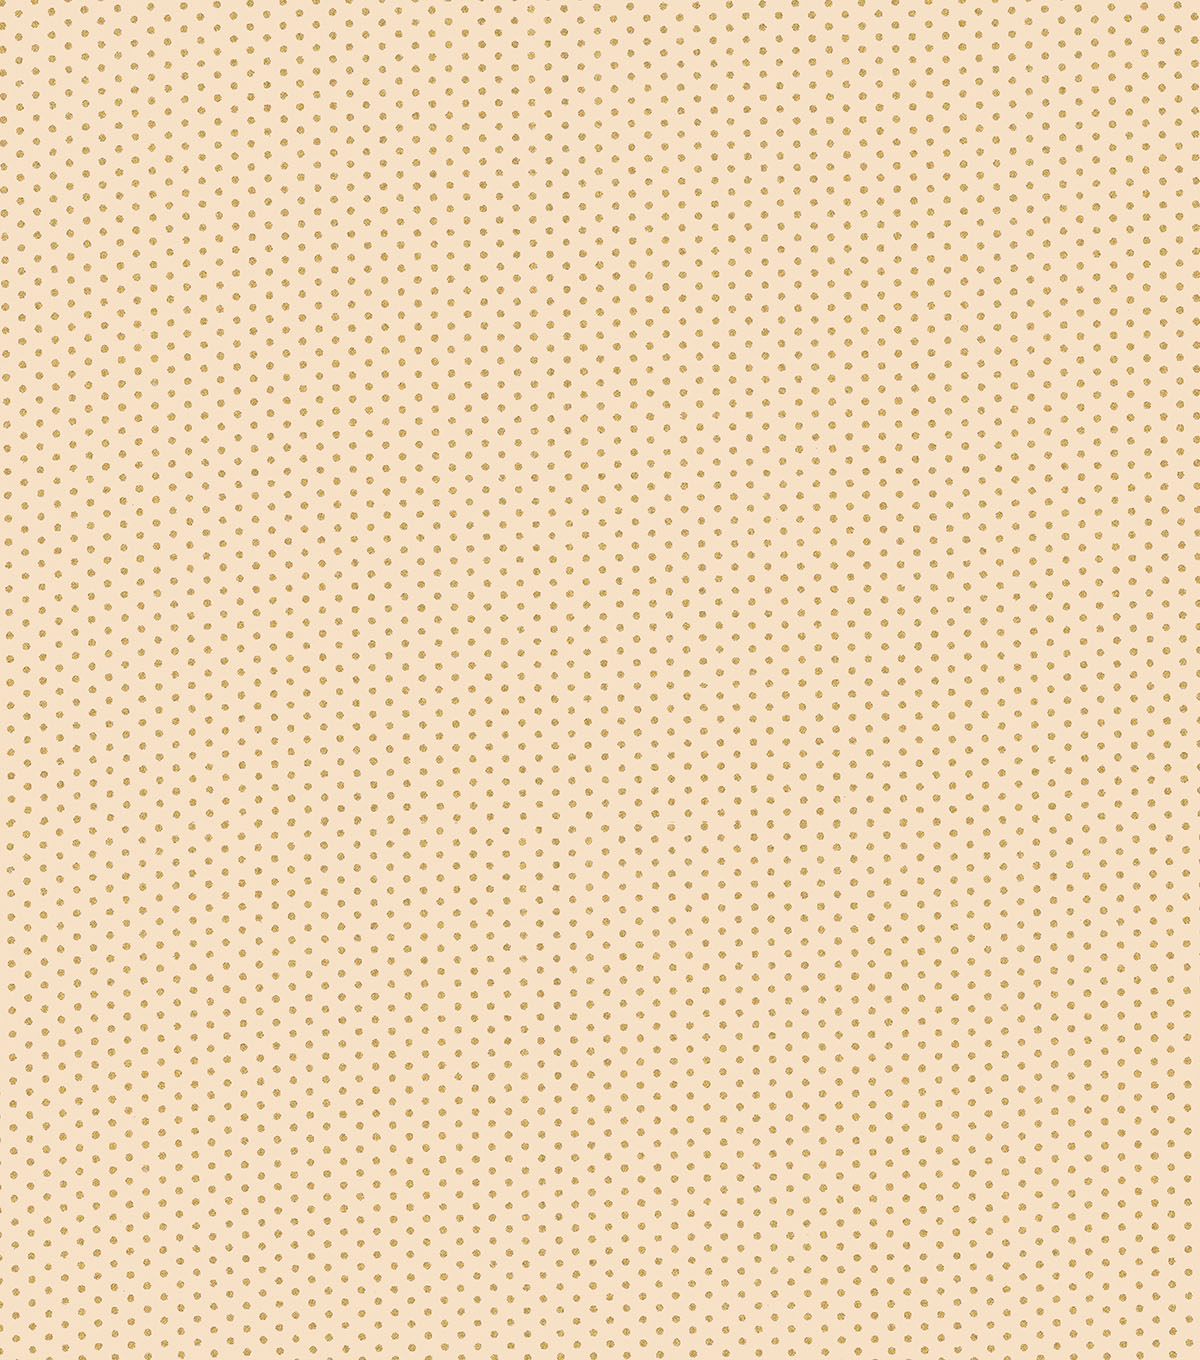 Fall Harvest Cotton Fabric-Ivory Dots Metallic